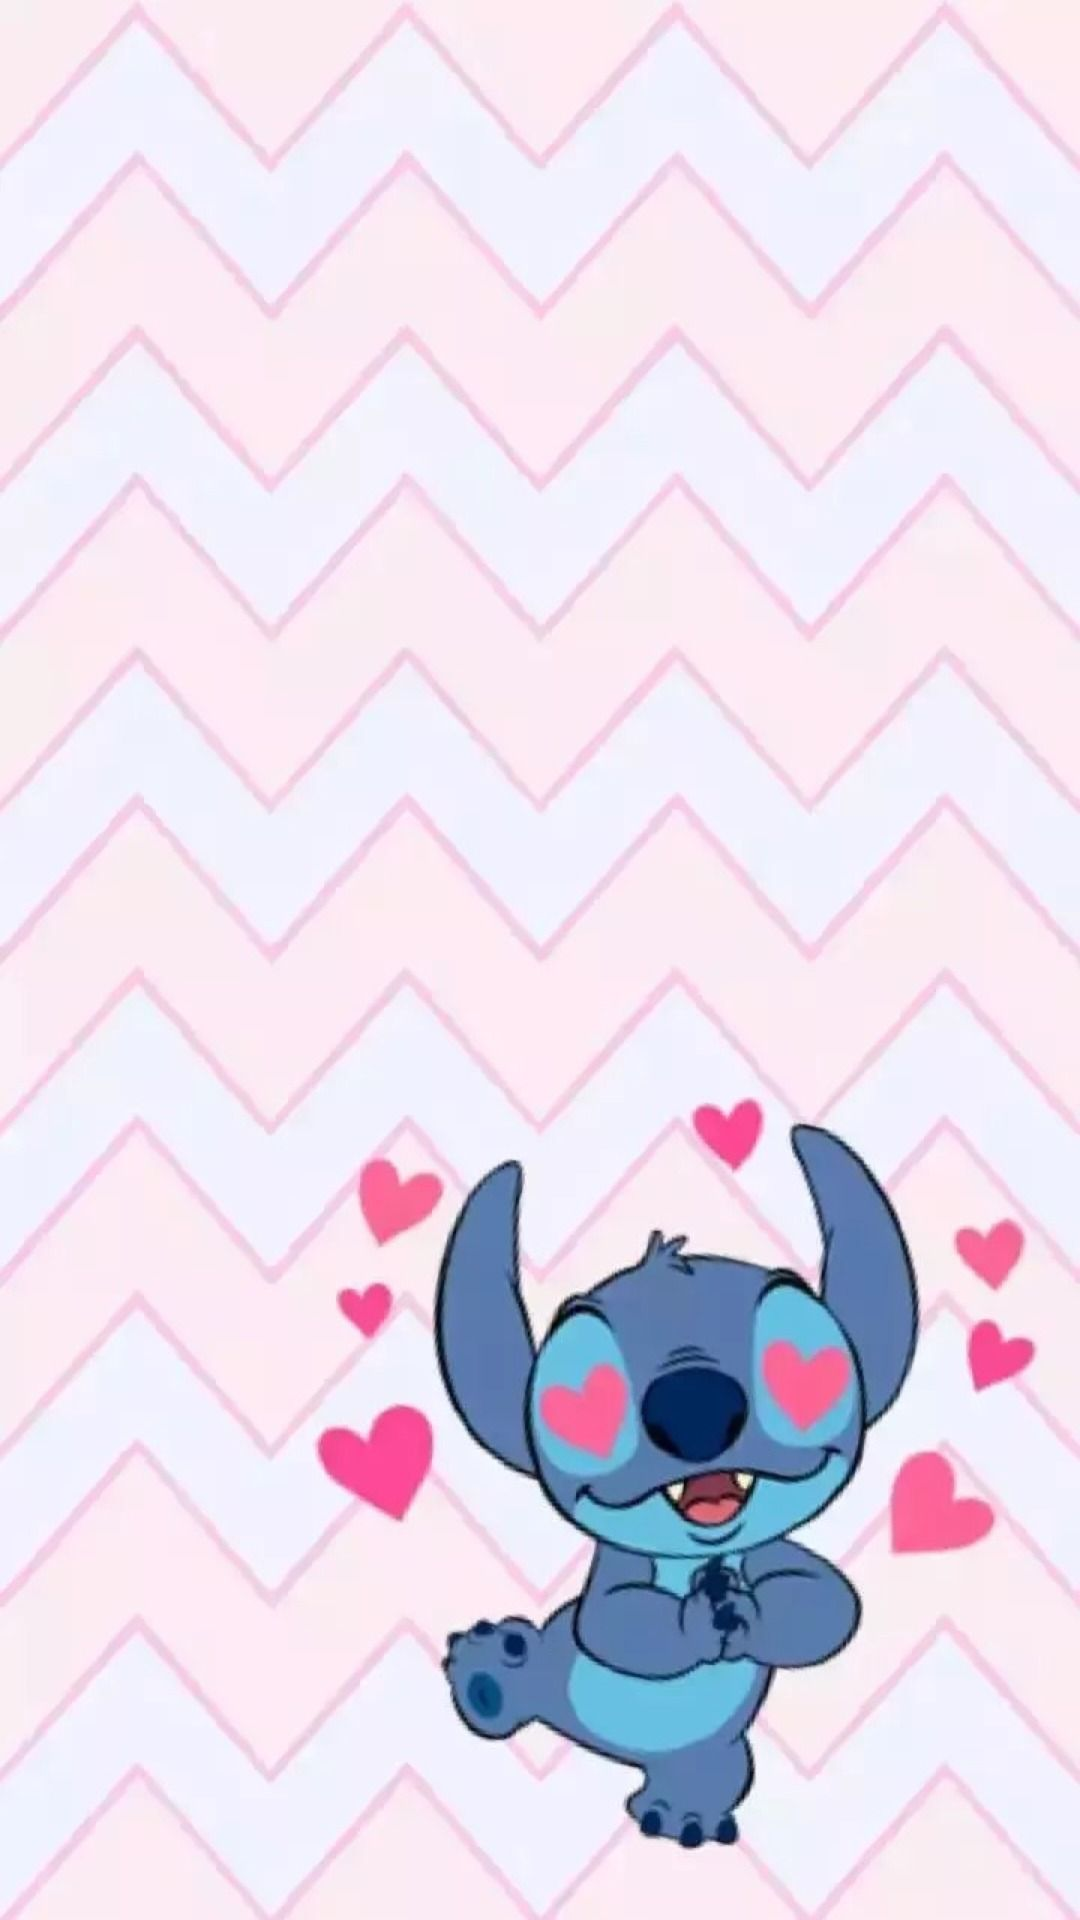 Stitch Wallpapers Images Hupages Download Iphone Wallpapers Lilo And Stitch Cute Disney Wallpaper Stitch Disney